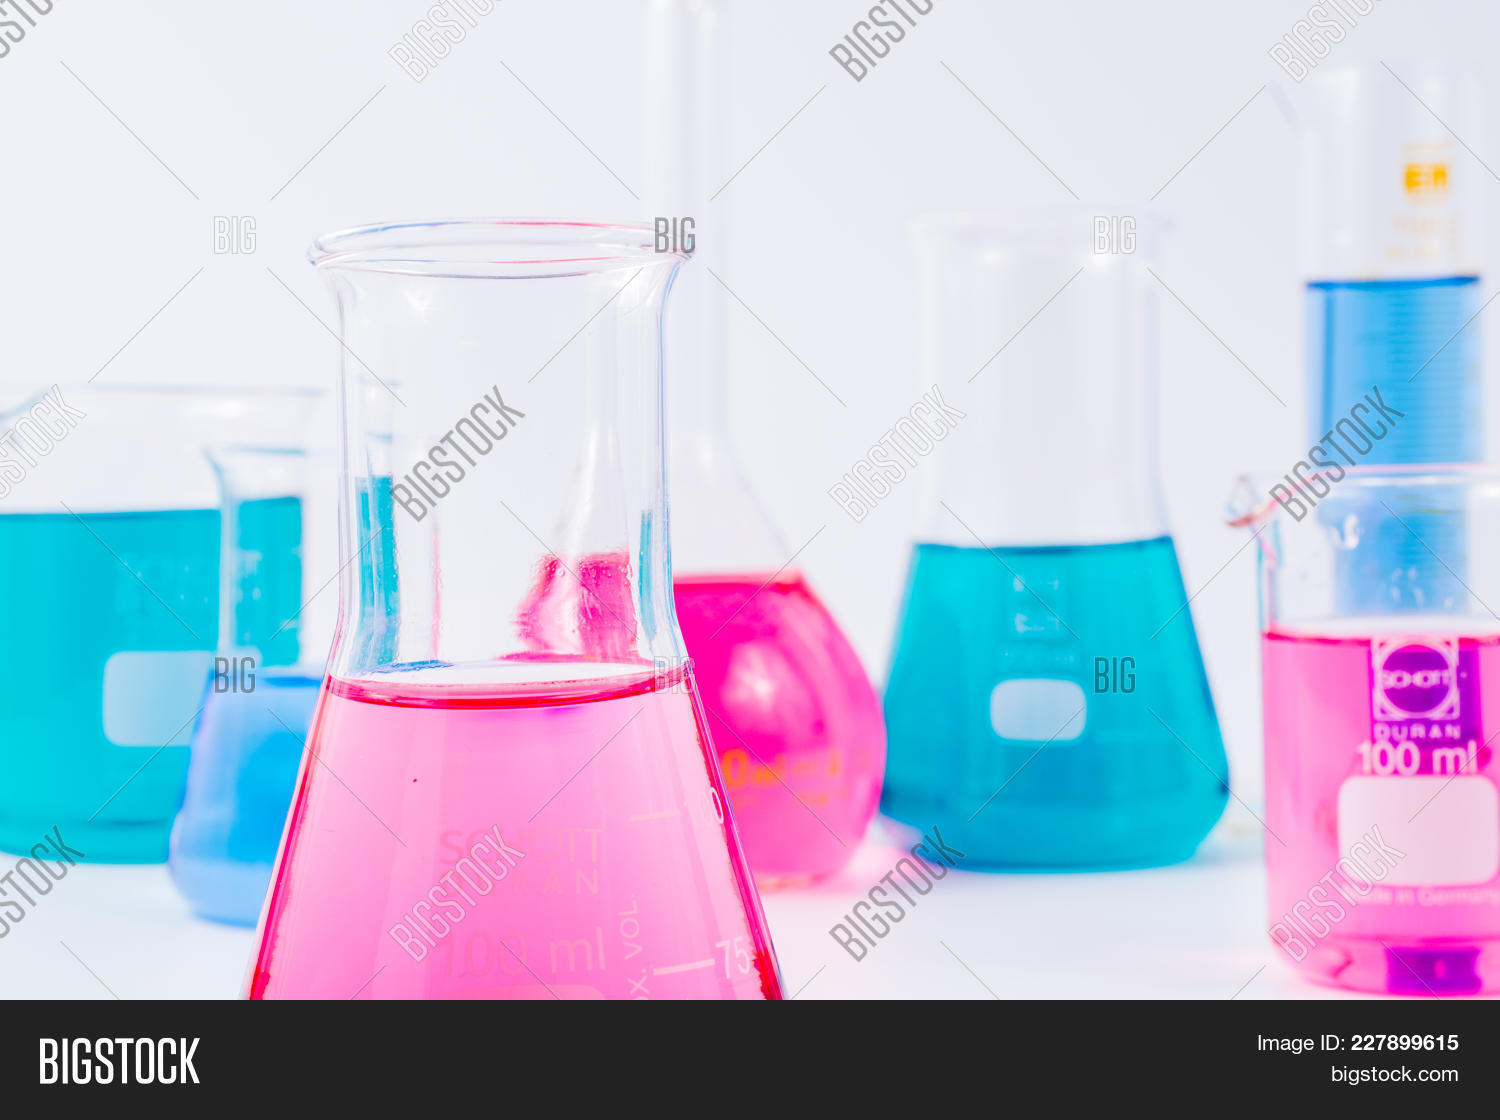 Chemical laboratory beakers powerpoint template chemical your text toneelgroepblik Choice Image